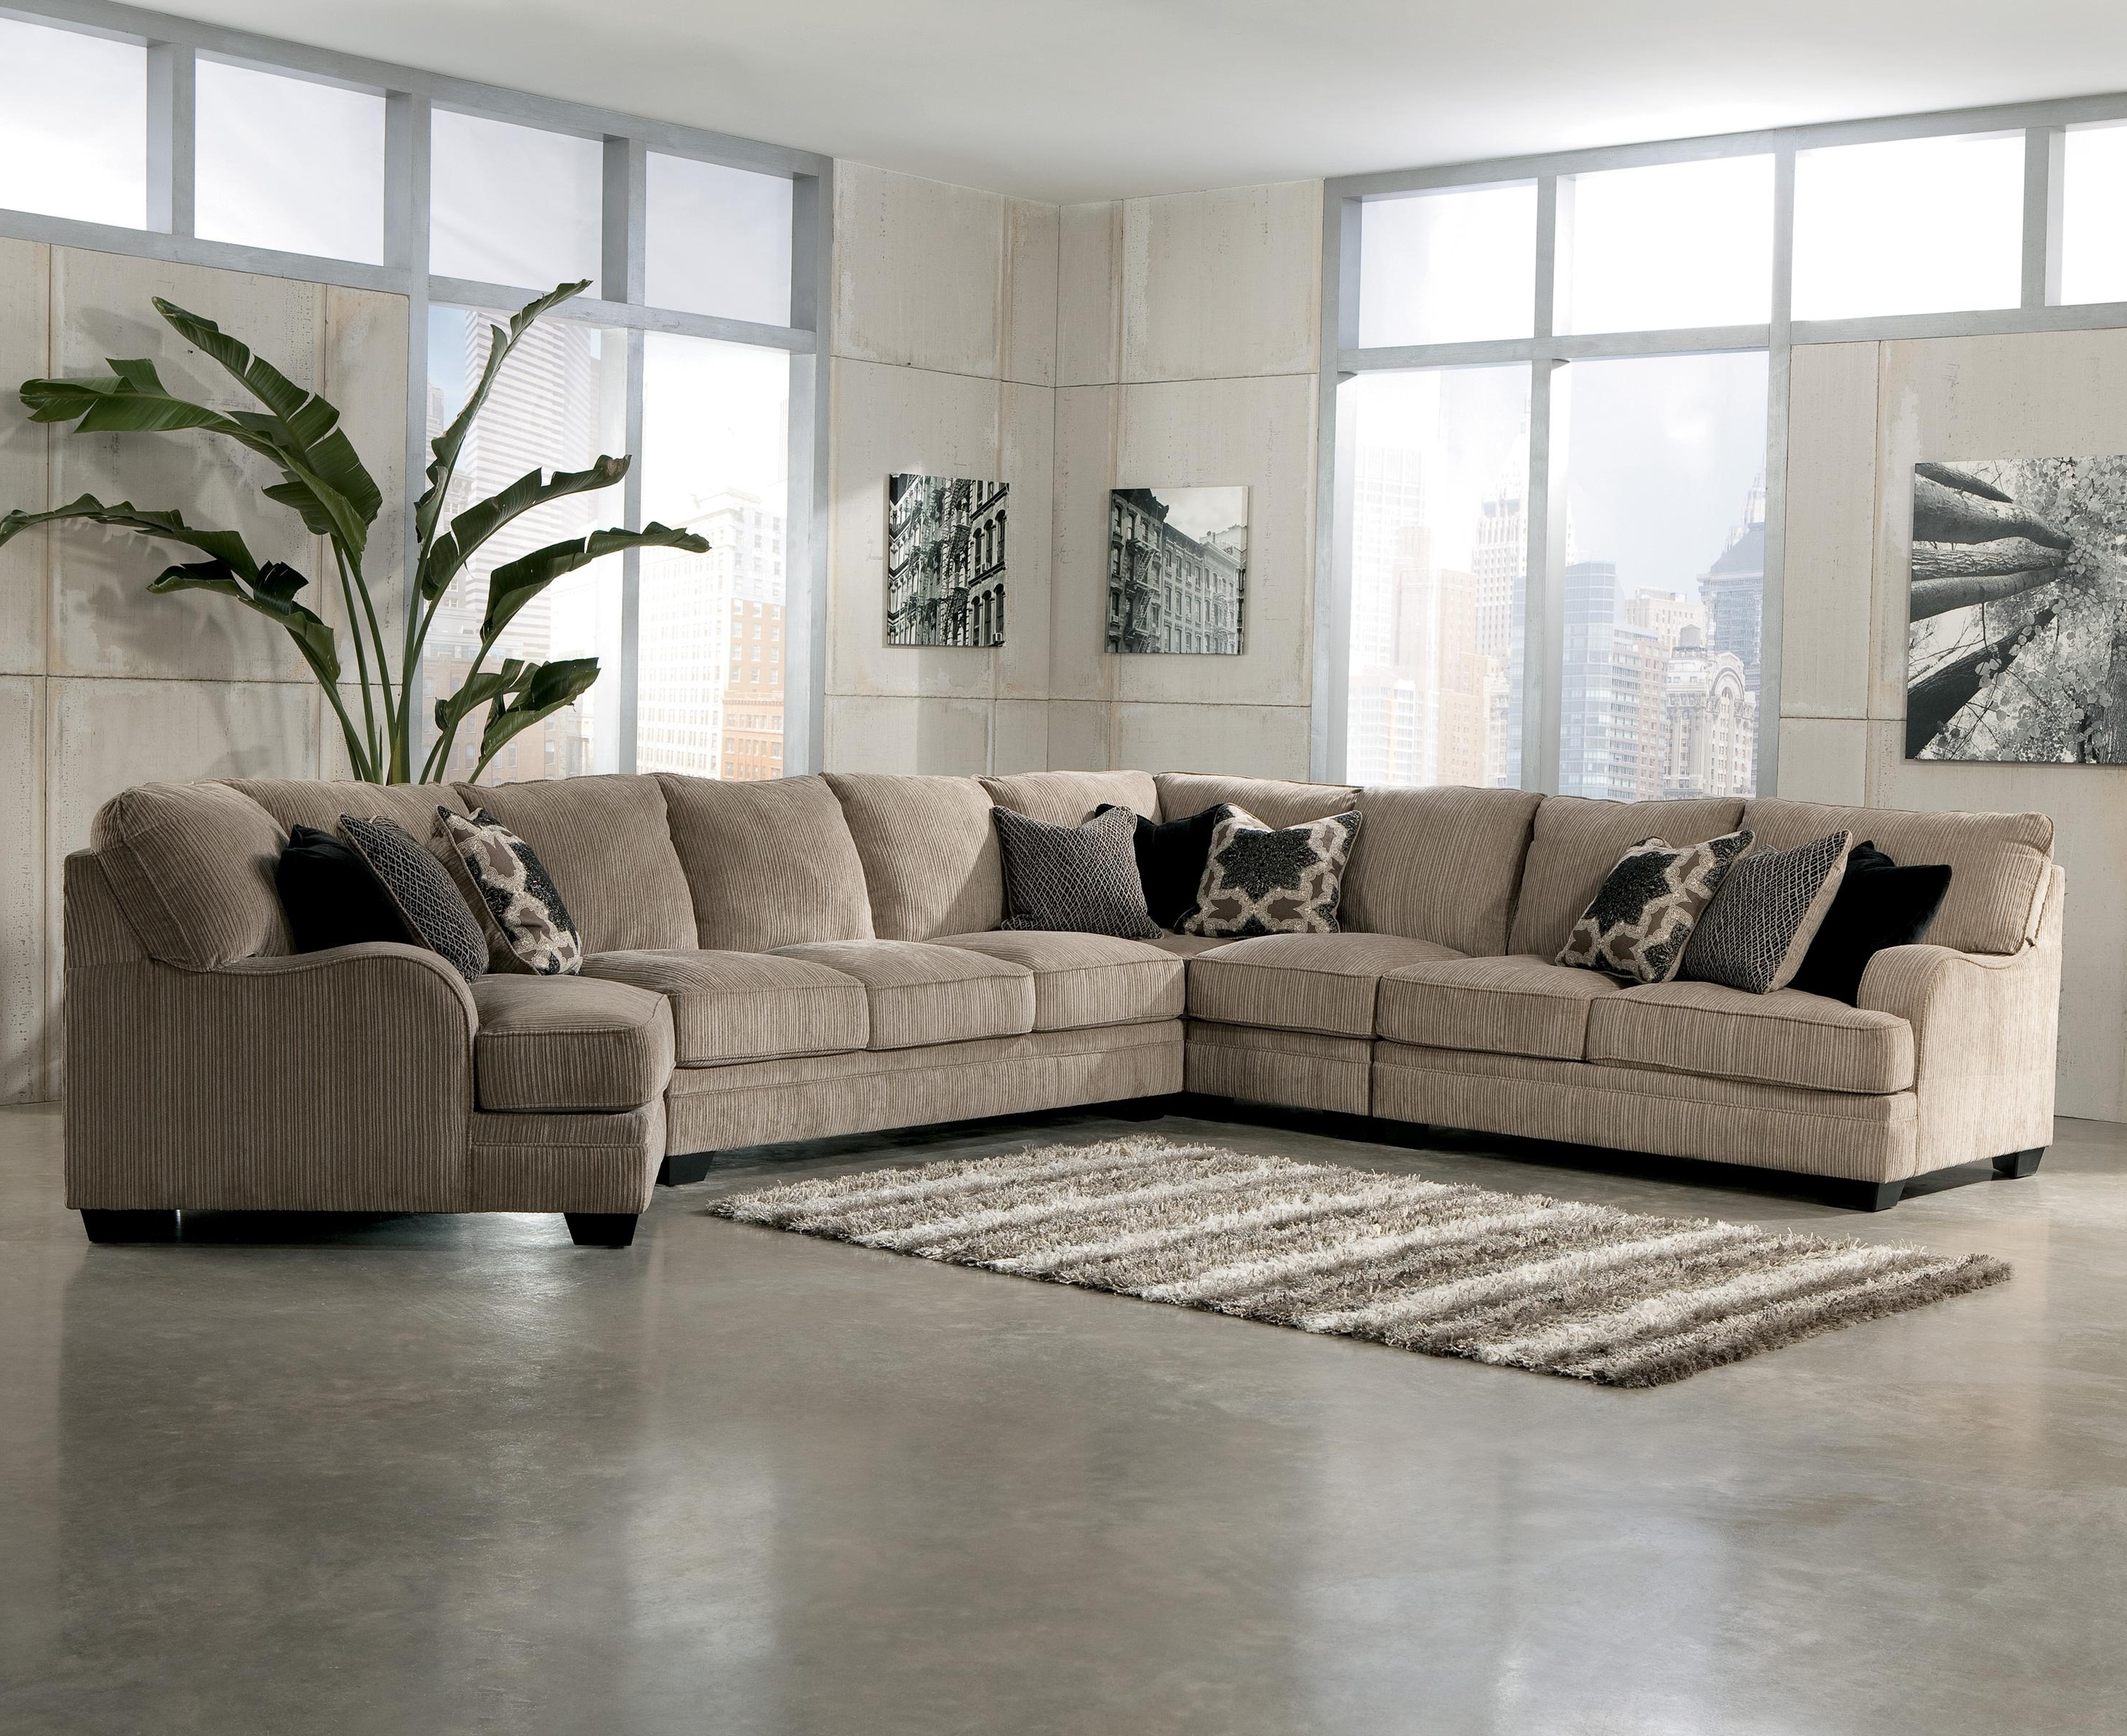 Johnson City Tn Sectional Sofas Pertaining To 2019 Signature Designashley Katisha – Platinum 5 Piece Sectional (View 10 of 20)